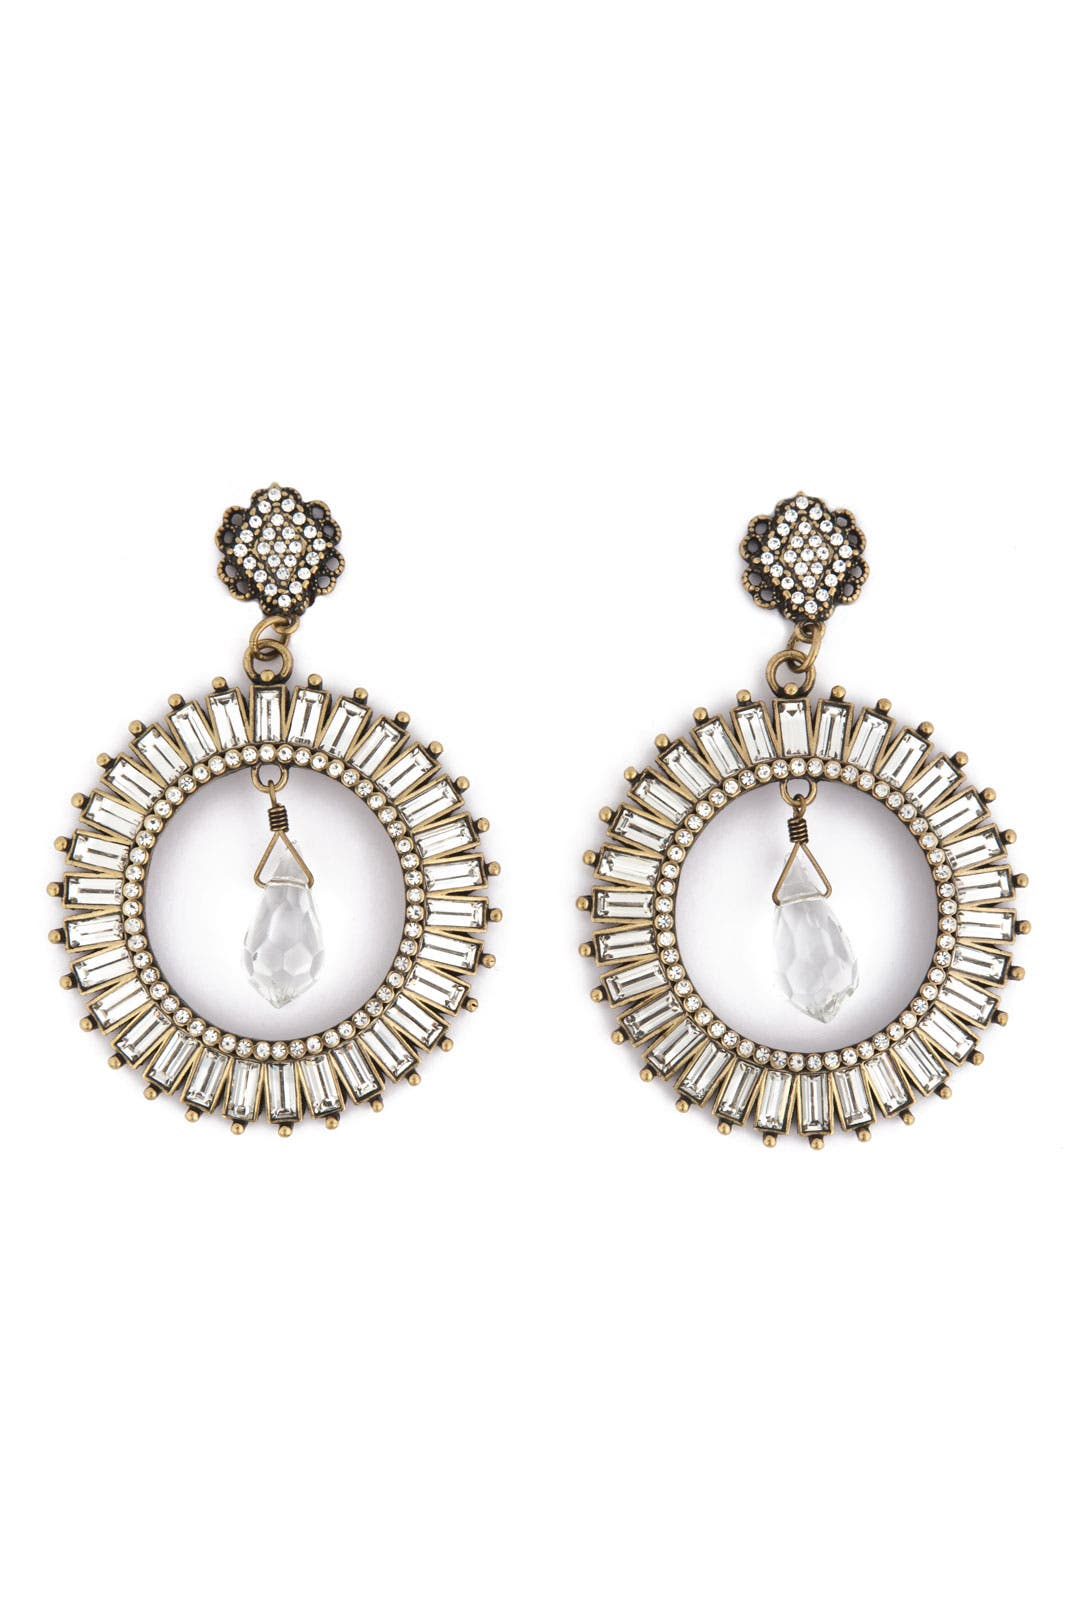 Radiant Crystal Crown Earrings by Badgley Mischka Jewelry